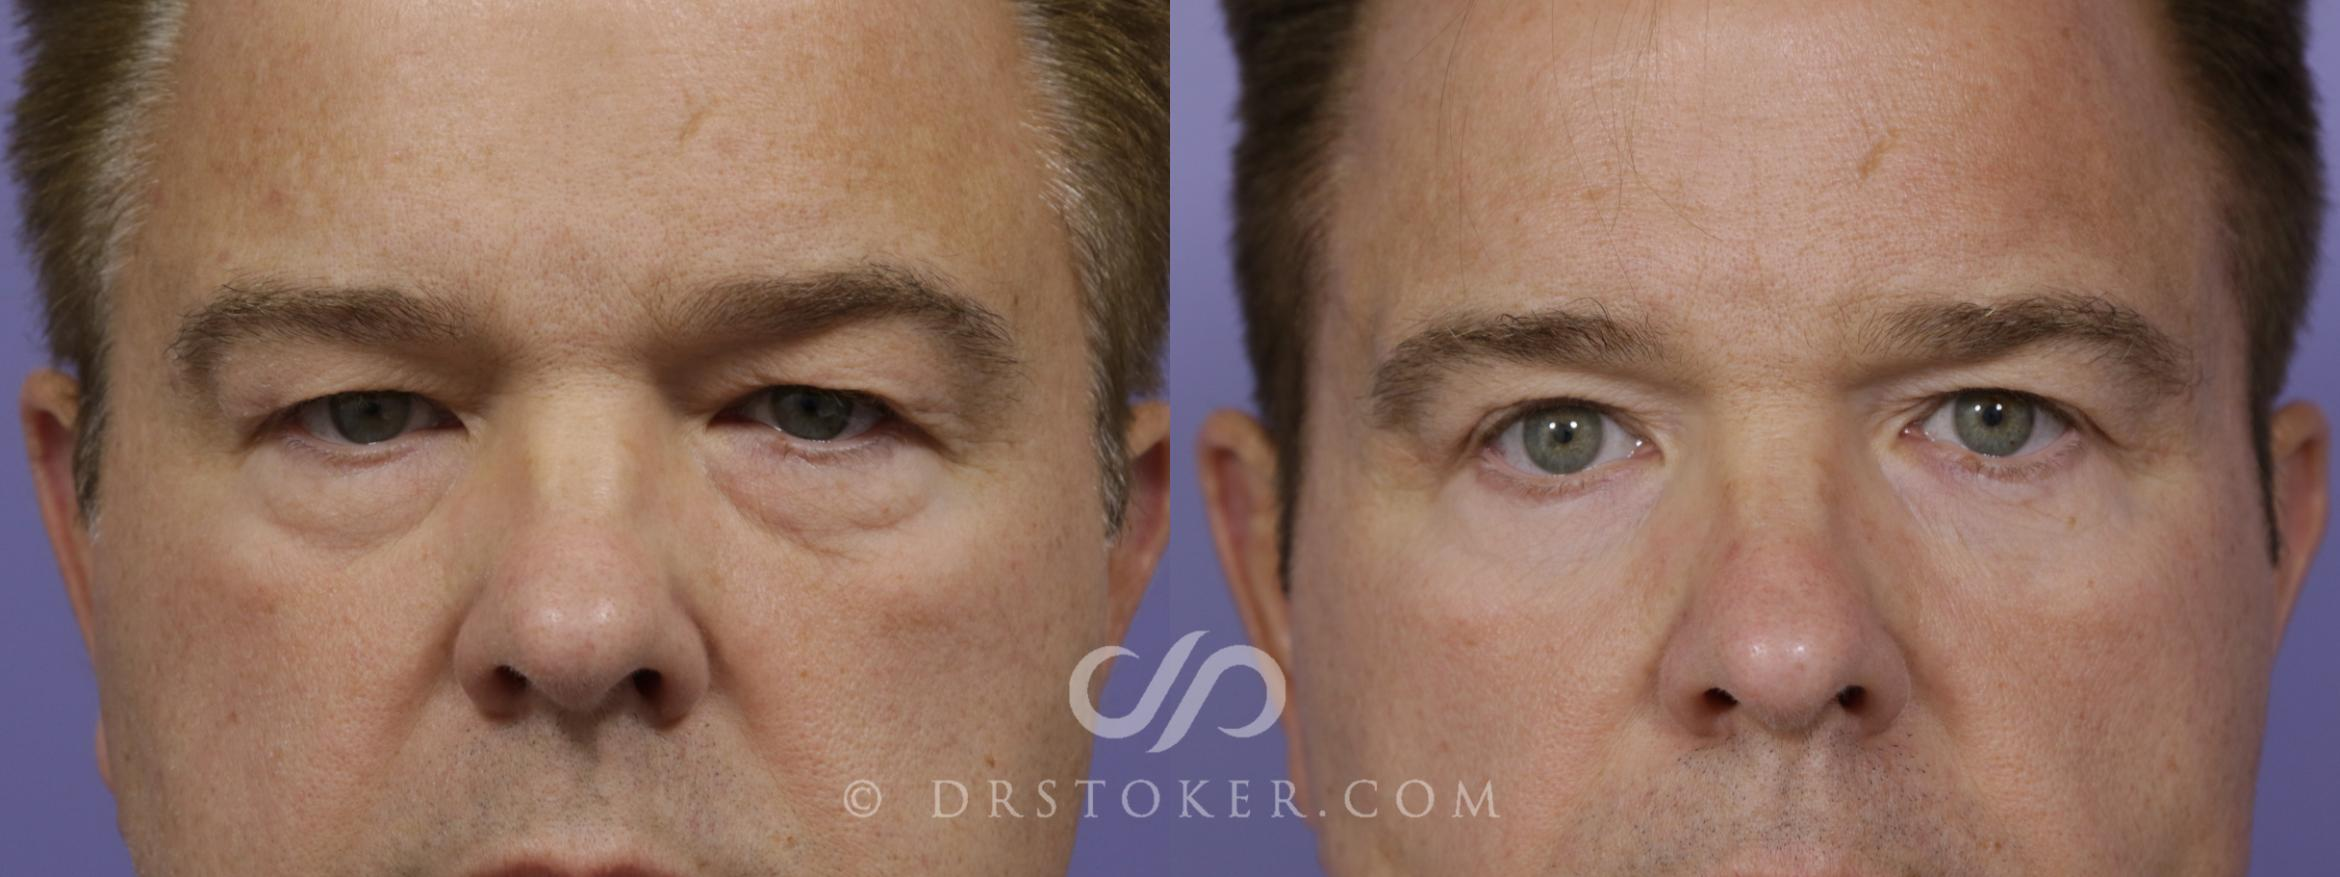 Eyelid Surgery for Men Case 1525 Before & After View #1 | Marina del Rey, CA | Dr. David Stoker